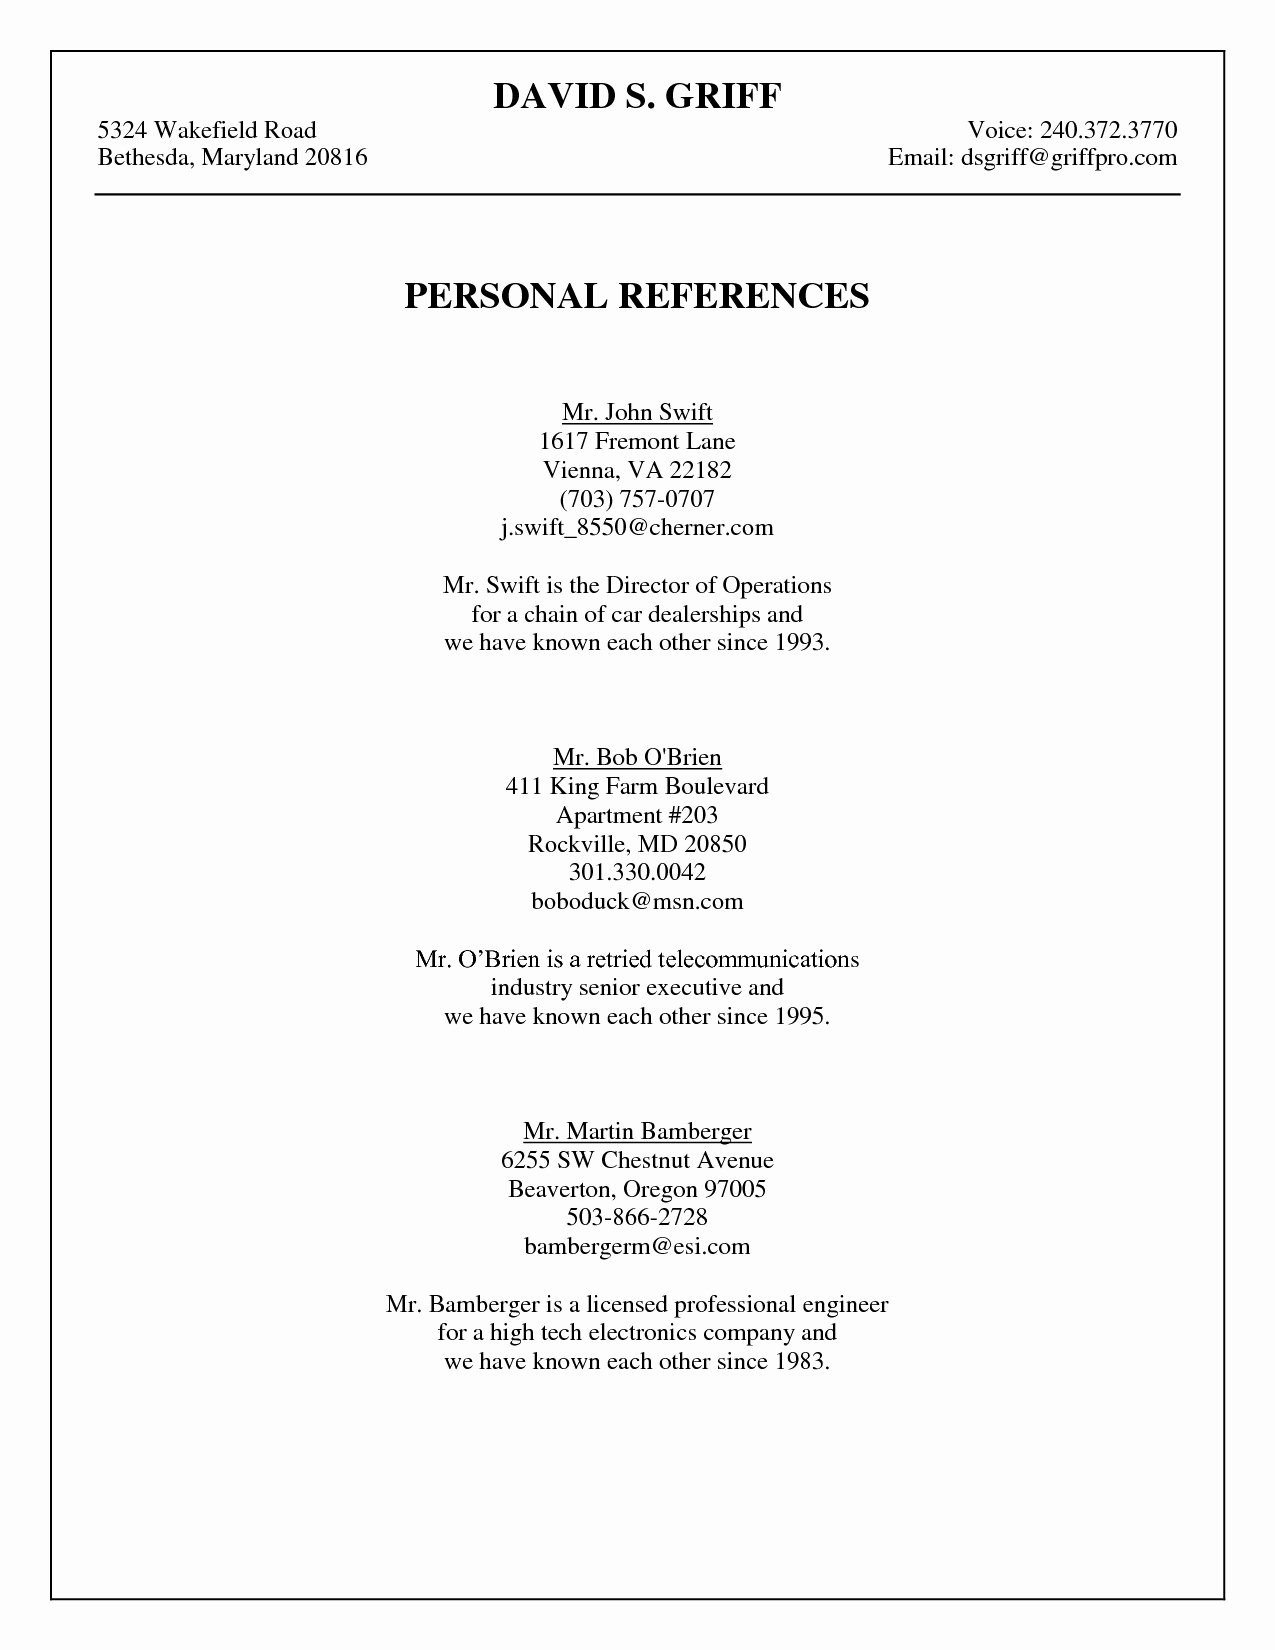 Job Reference Page Template Bibliography Generator Should